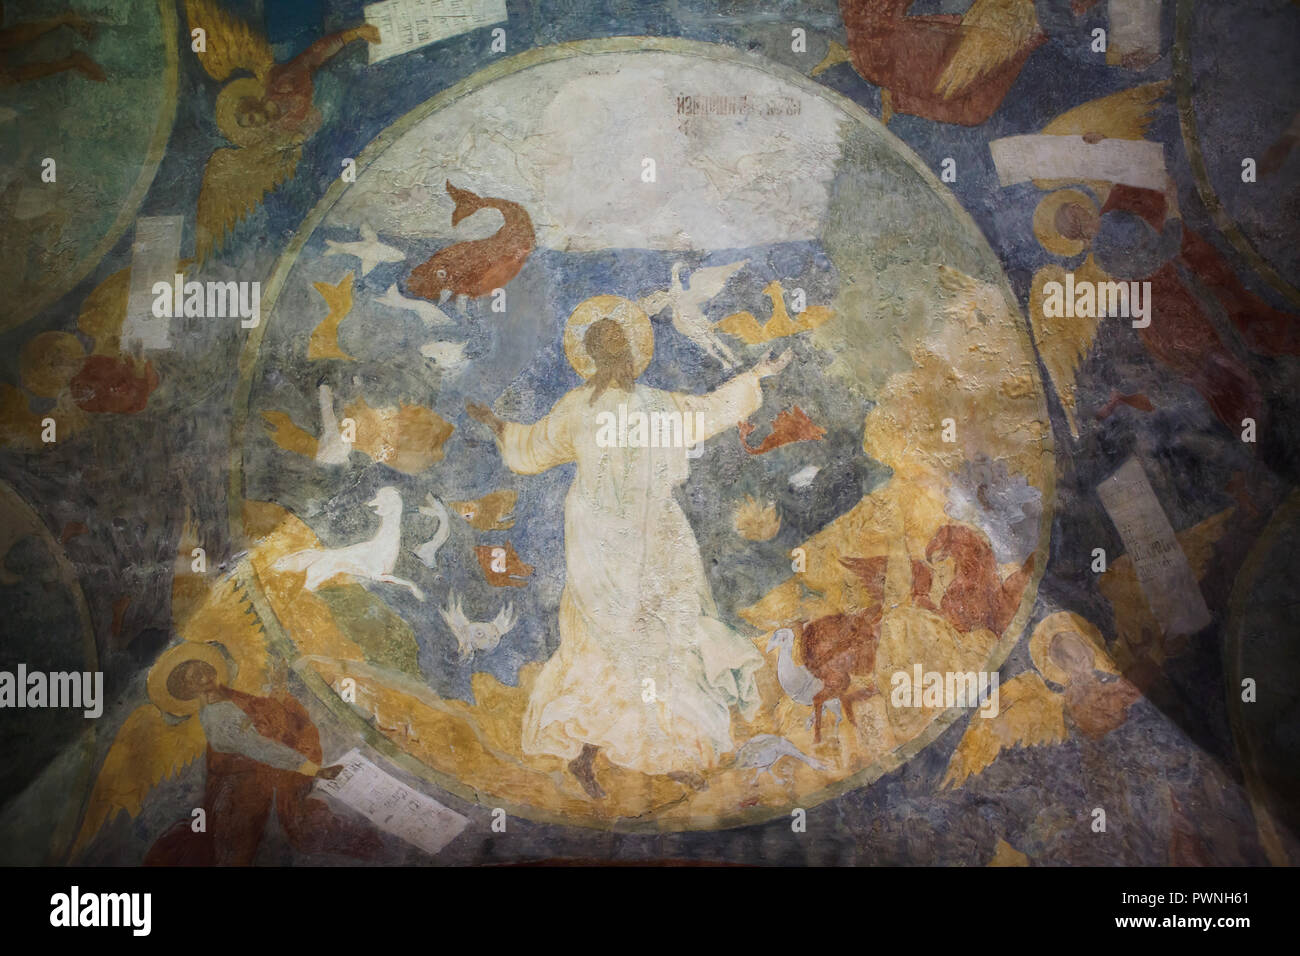 Creation of the Animals. Fresco by Russian painters Dmitry Plekhanov and Fyodor Ignatyev dated from 1700 in the north gallery (papert) in the Church of Saint John the Baptist at Tolchkovo in Yaroslavl, Russia. - Stock Image